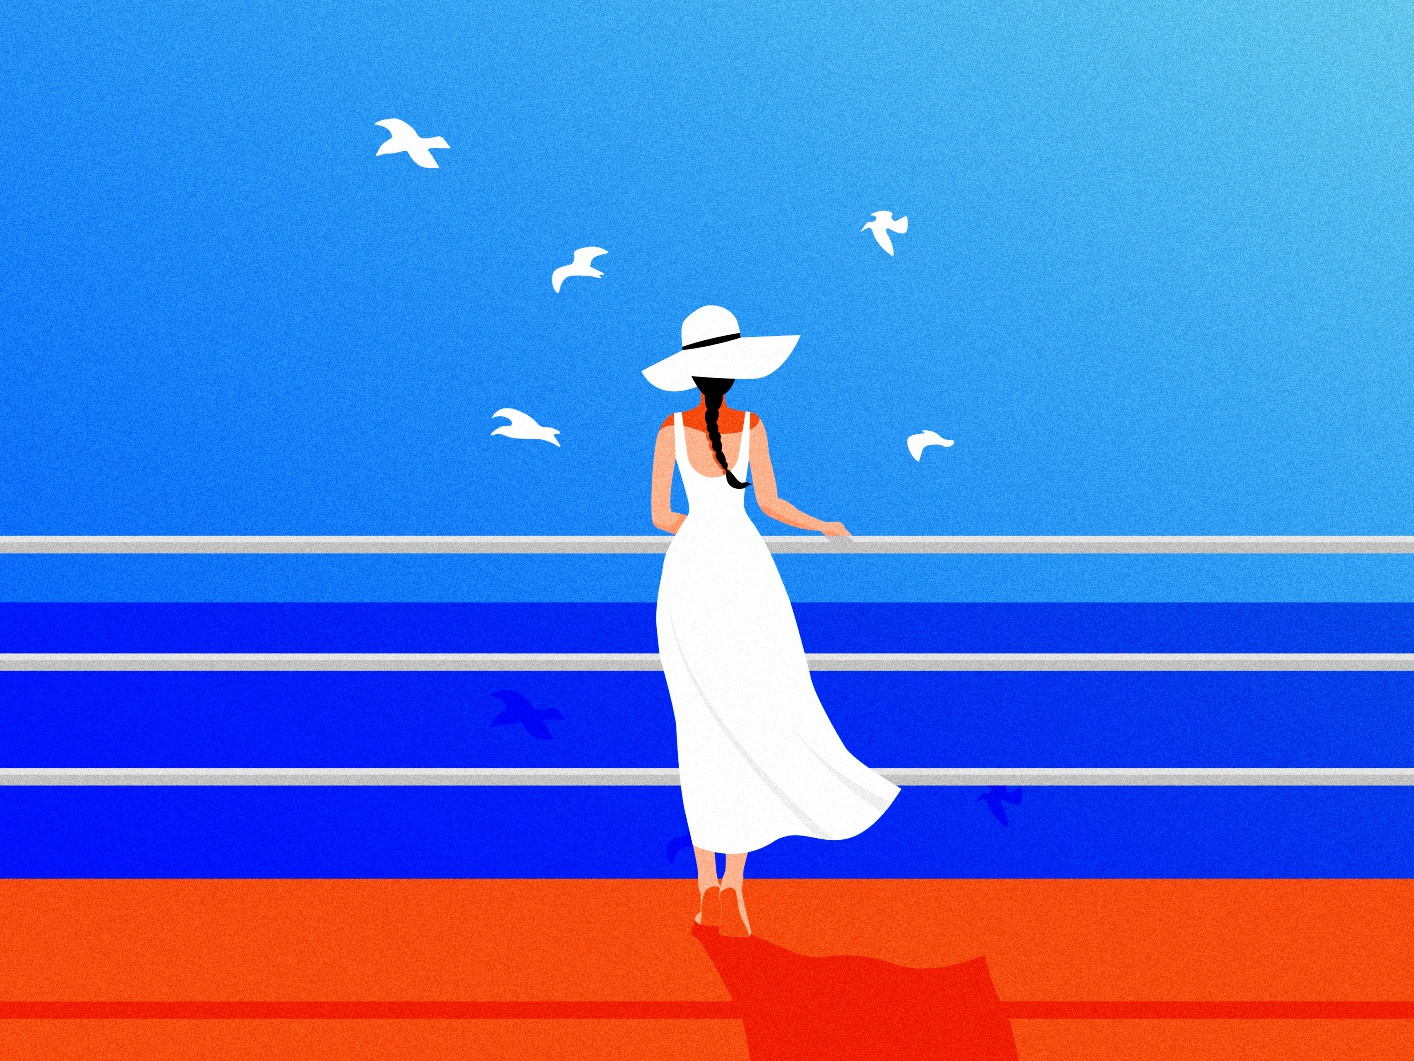 Just breathe blue blue sky sea serenity peace graphic designer vector minimalism inspiration flat branding graphic design adobe illustrator woman illustration illustration